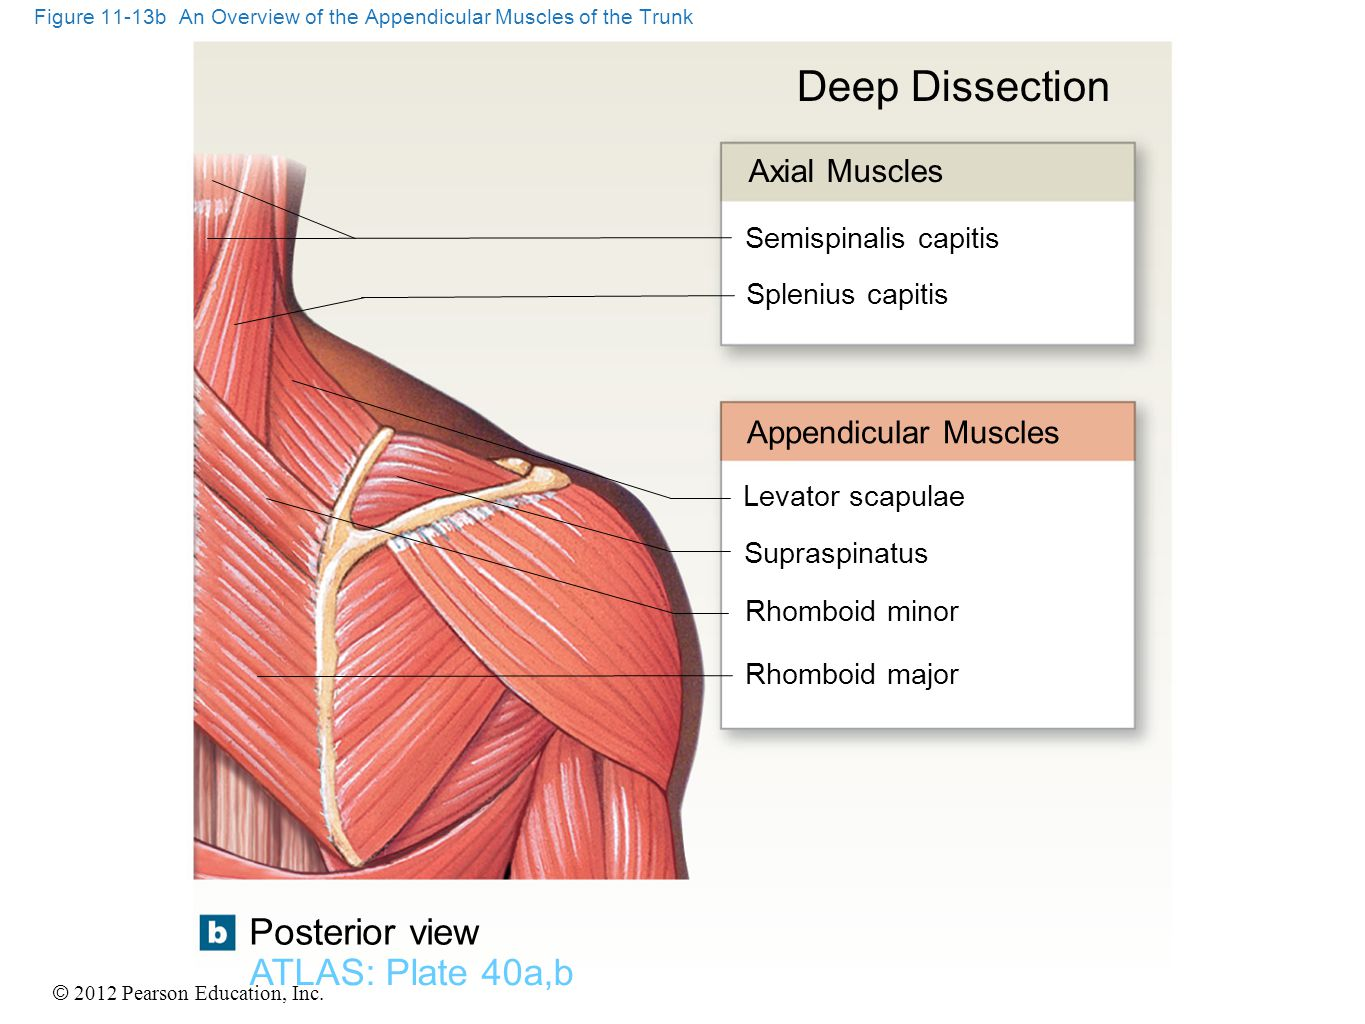 © 2012 Pearson Education, Inc. Figure 11-13b An Overview of the Appendicular Muscles of the Trunk ATLAS: Plate 40a,b Posterior view Deep Dissection Ax